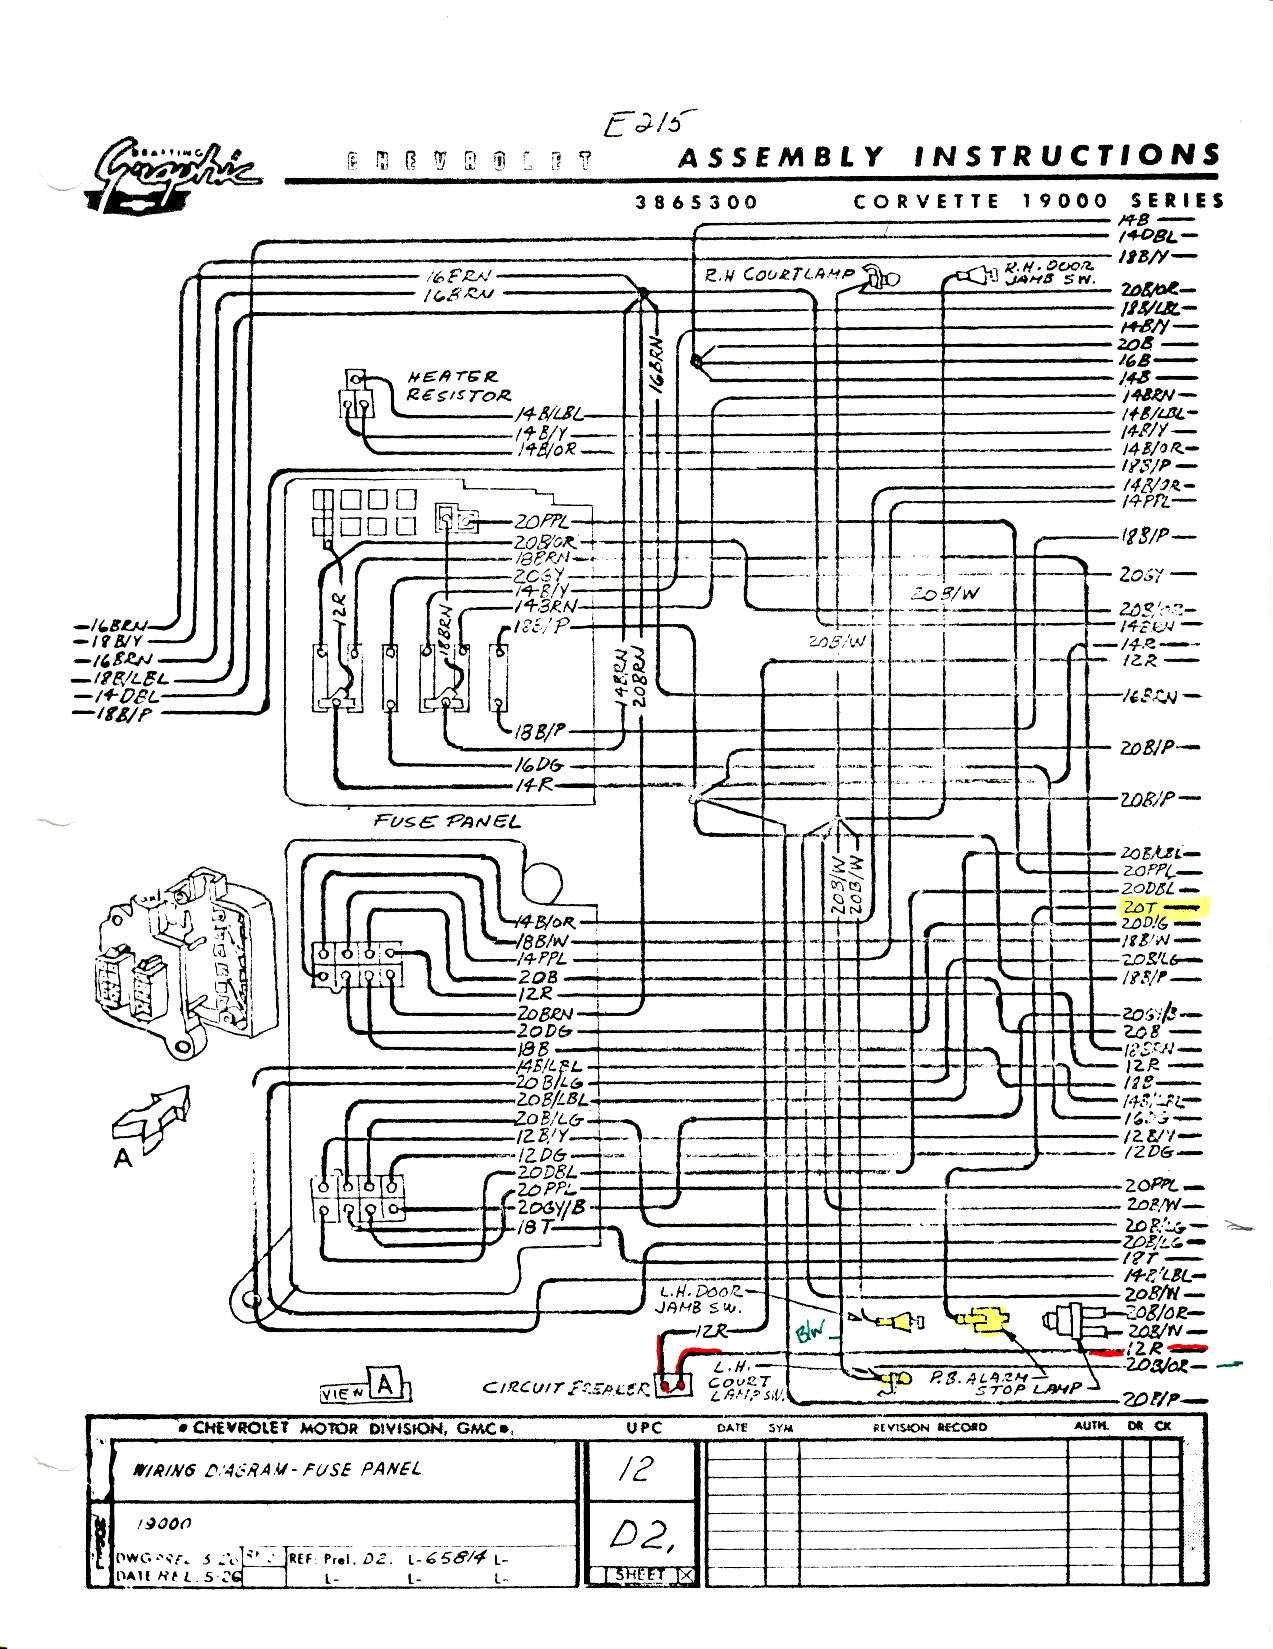 hight resolution of 1965 chevy corvette wiring diagram simple wiring diagrams c6 corvette headlights 65 corvette wiring diagrams wiring